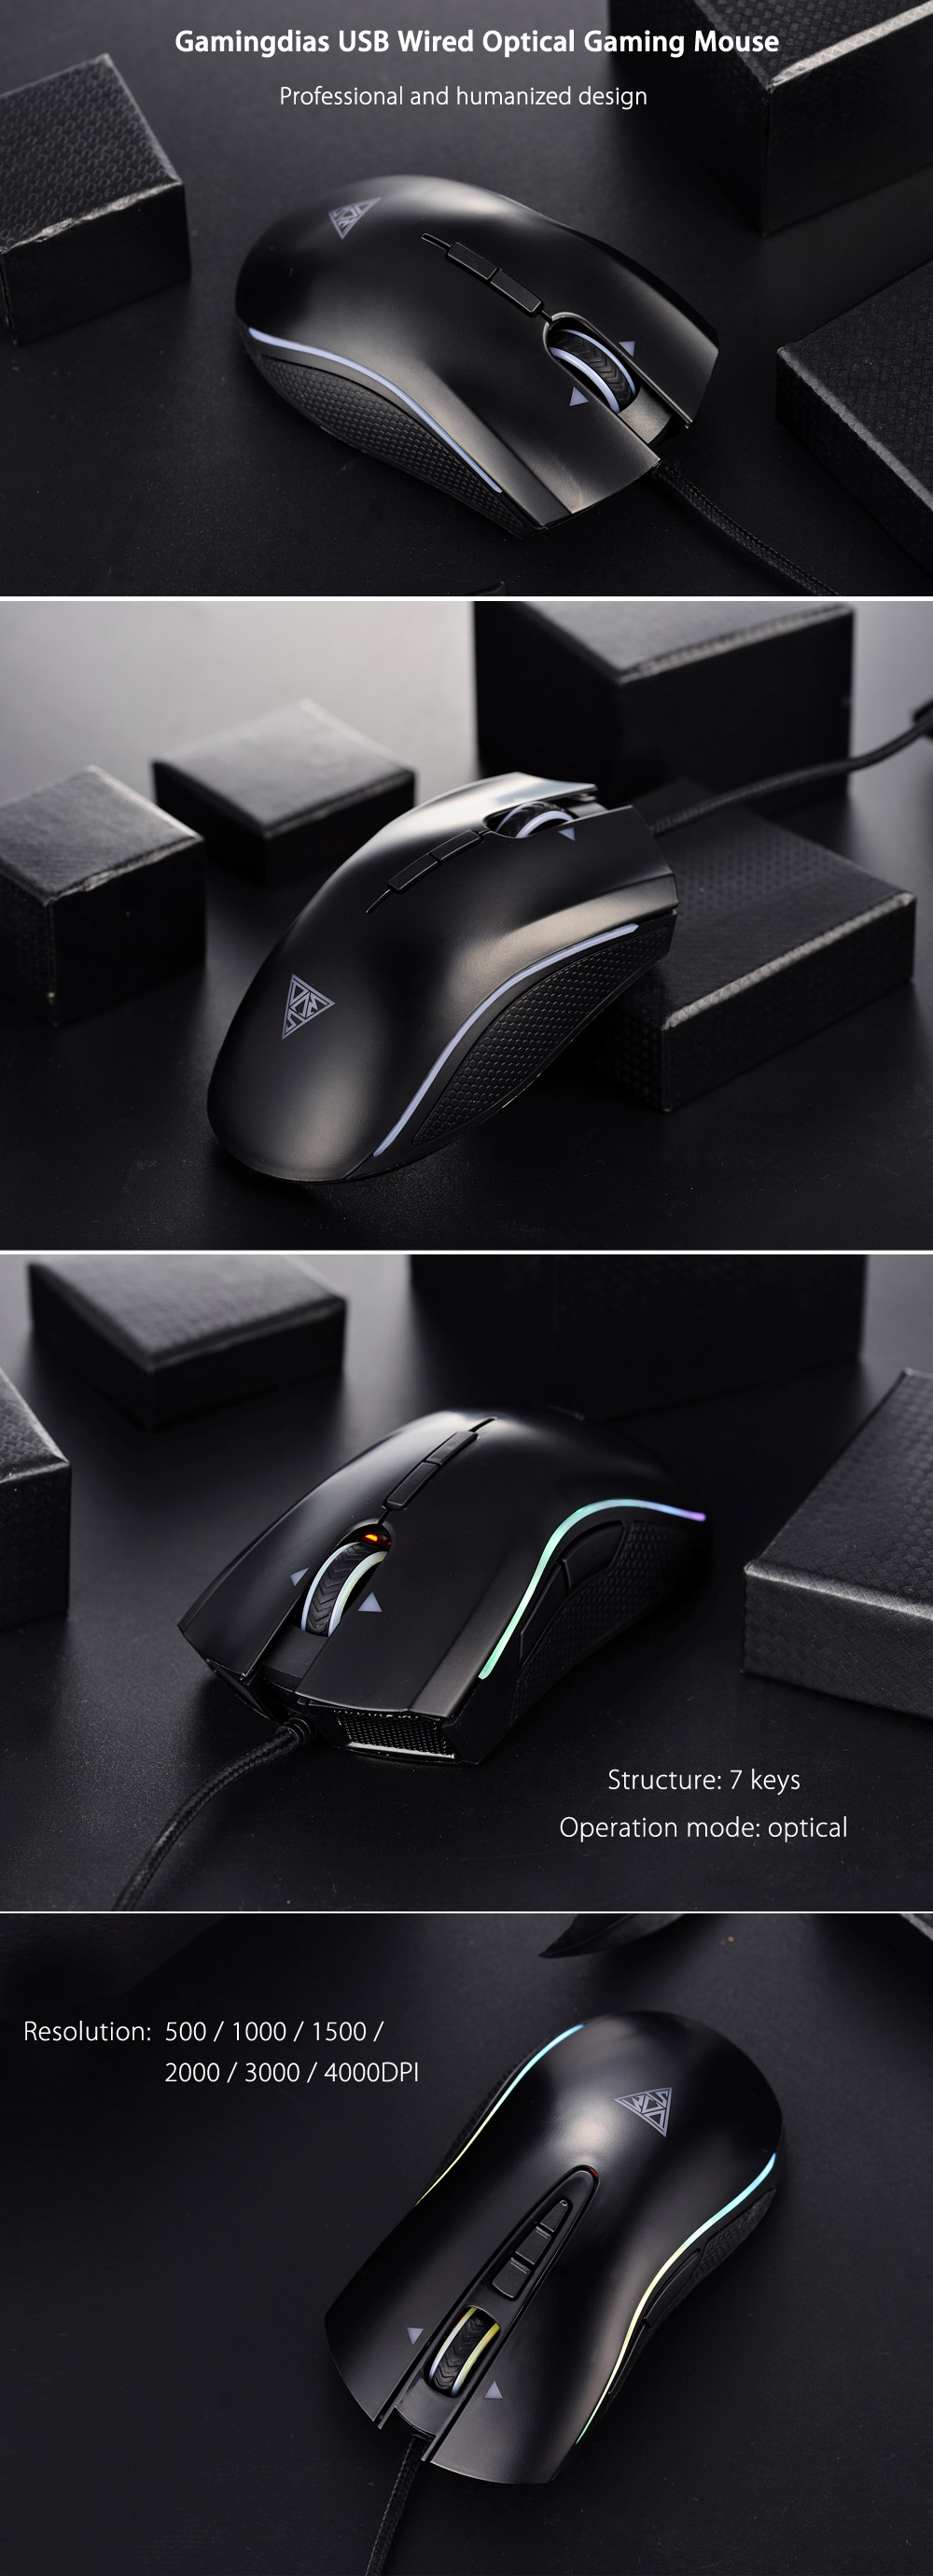 Gamingdias 7 Key USB Wired Optical Gaming Mouse with Ergonomic Design